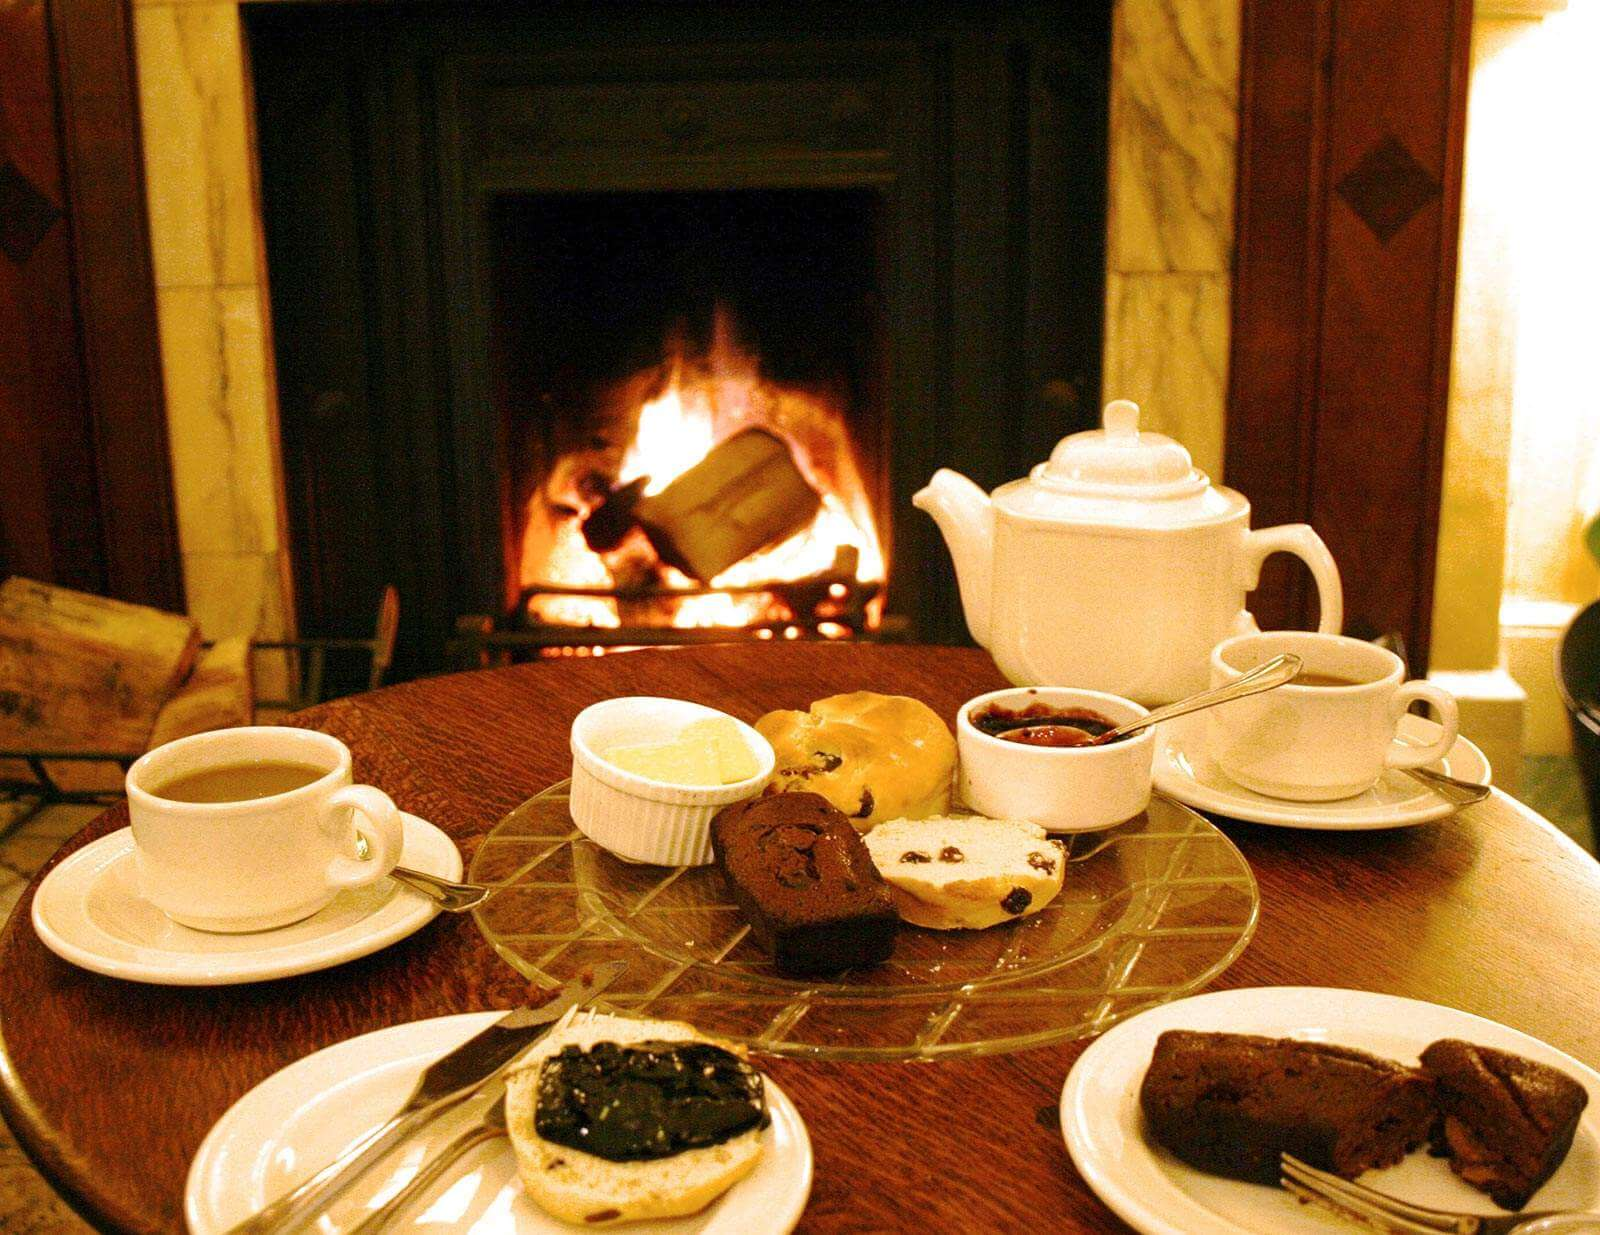 Afternoon Tea at Hotel in Shropshire